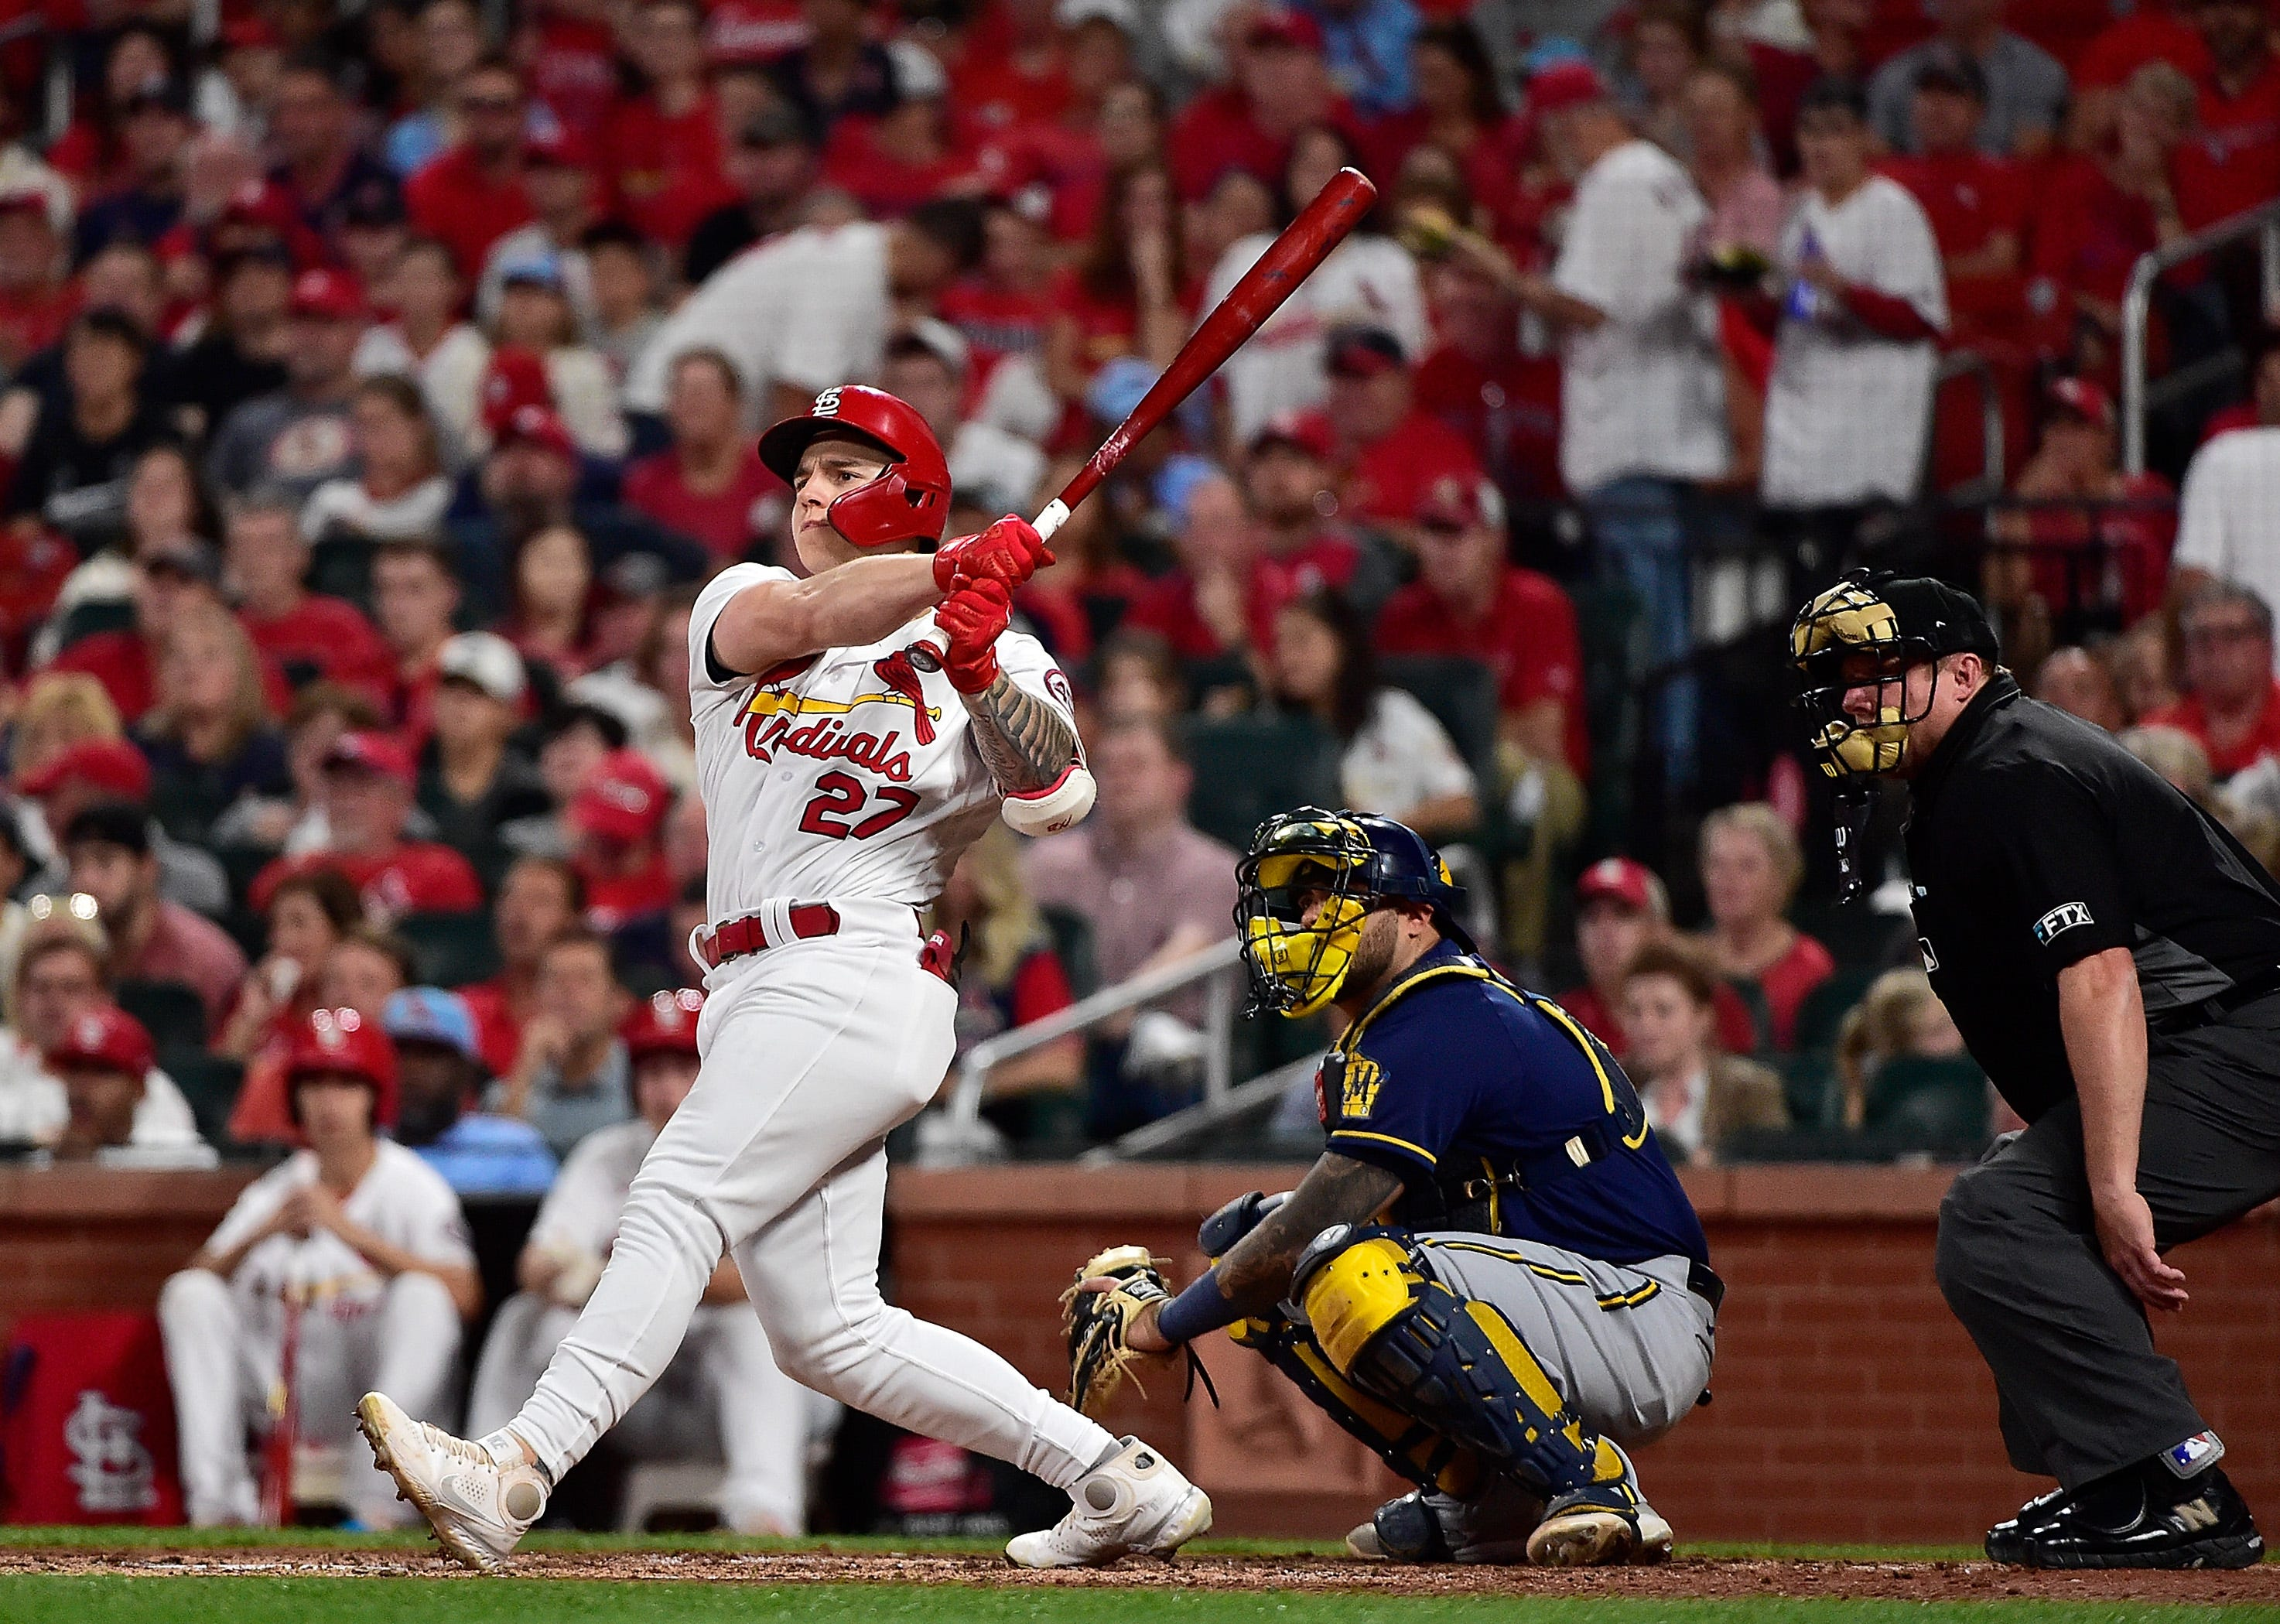 St. Louis Cardinals win 17th straight game, clinch National League wild-card spot